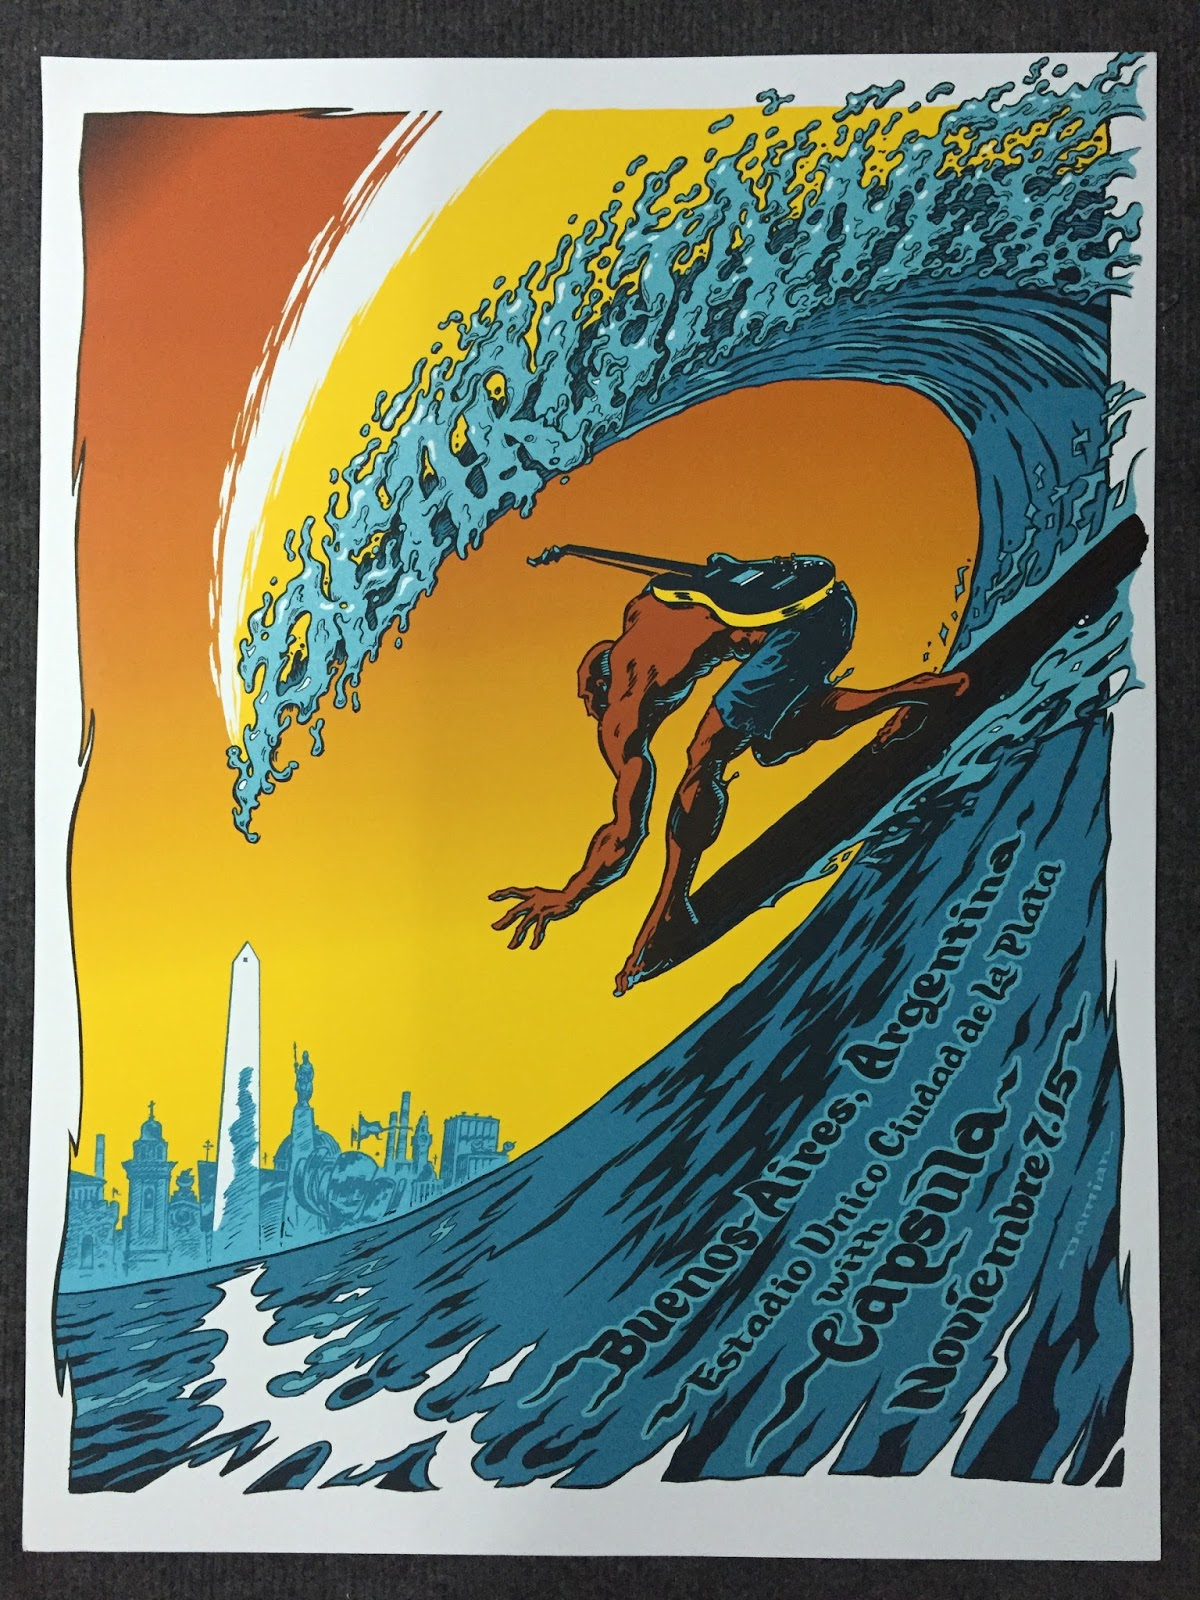 gallery openings with Damian Fulton Pearl Jam Buenos Aires Argentina Poster on Studio 88 likewise Selected Brand Hiab moreover Visit also Hostess Job Description Resume furthermore Phantom City Creative Phantasm And Wolf Man Movie Poster.